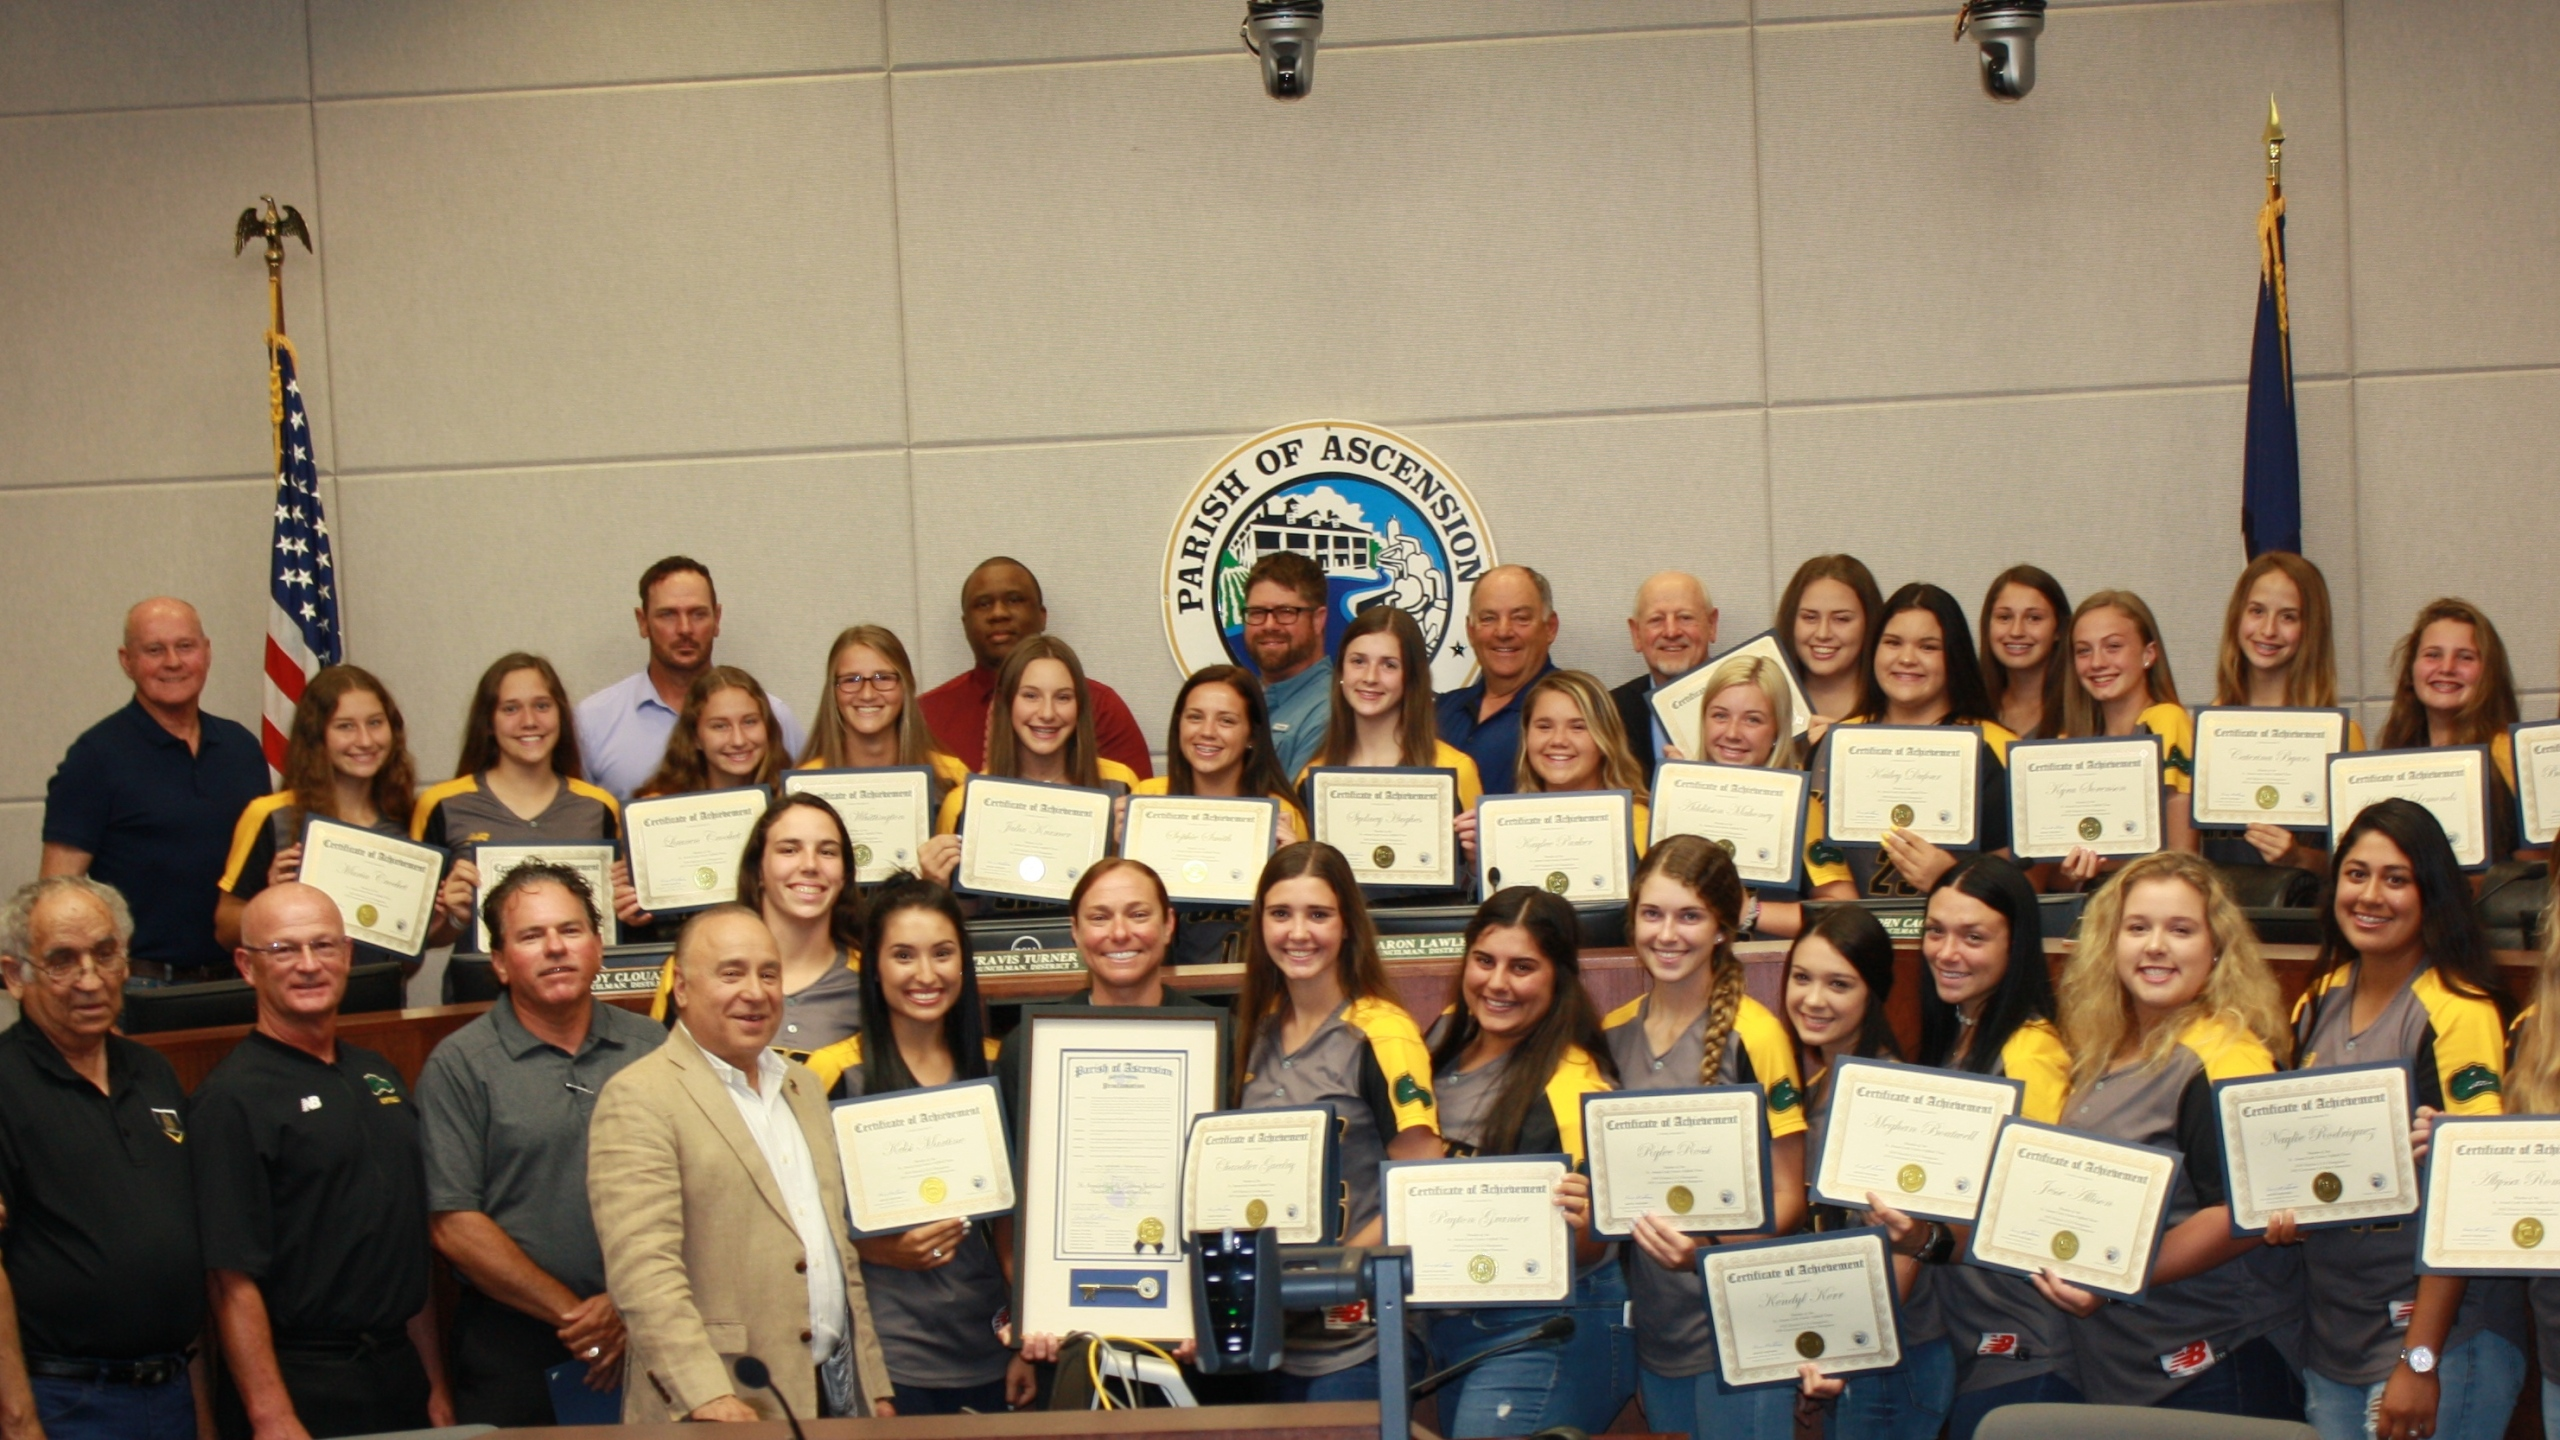 2019 St. Amant Lady Gators Softball Team State Champions_1557978488115.jpg.jpg